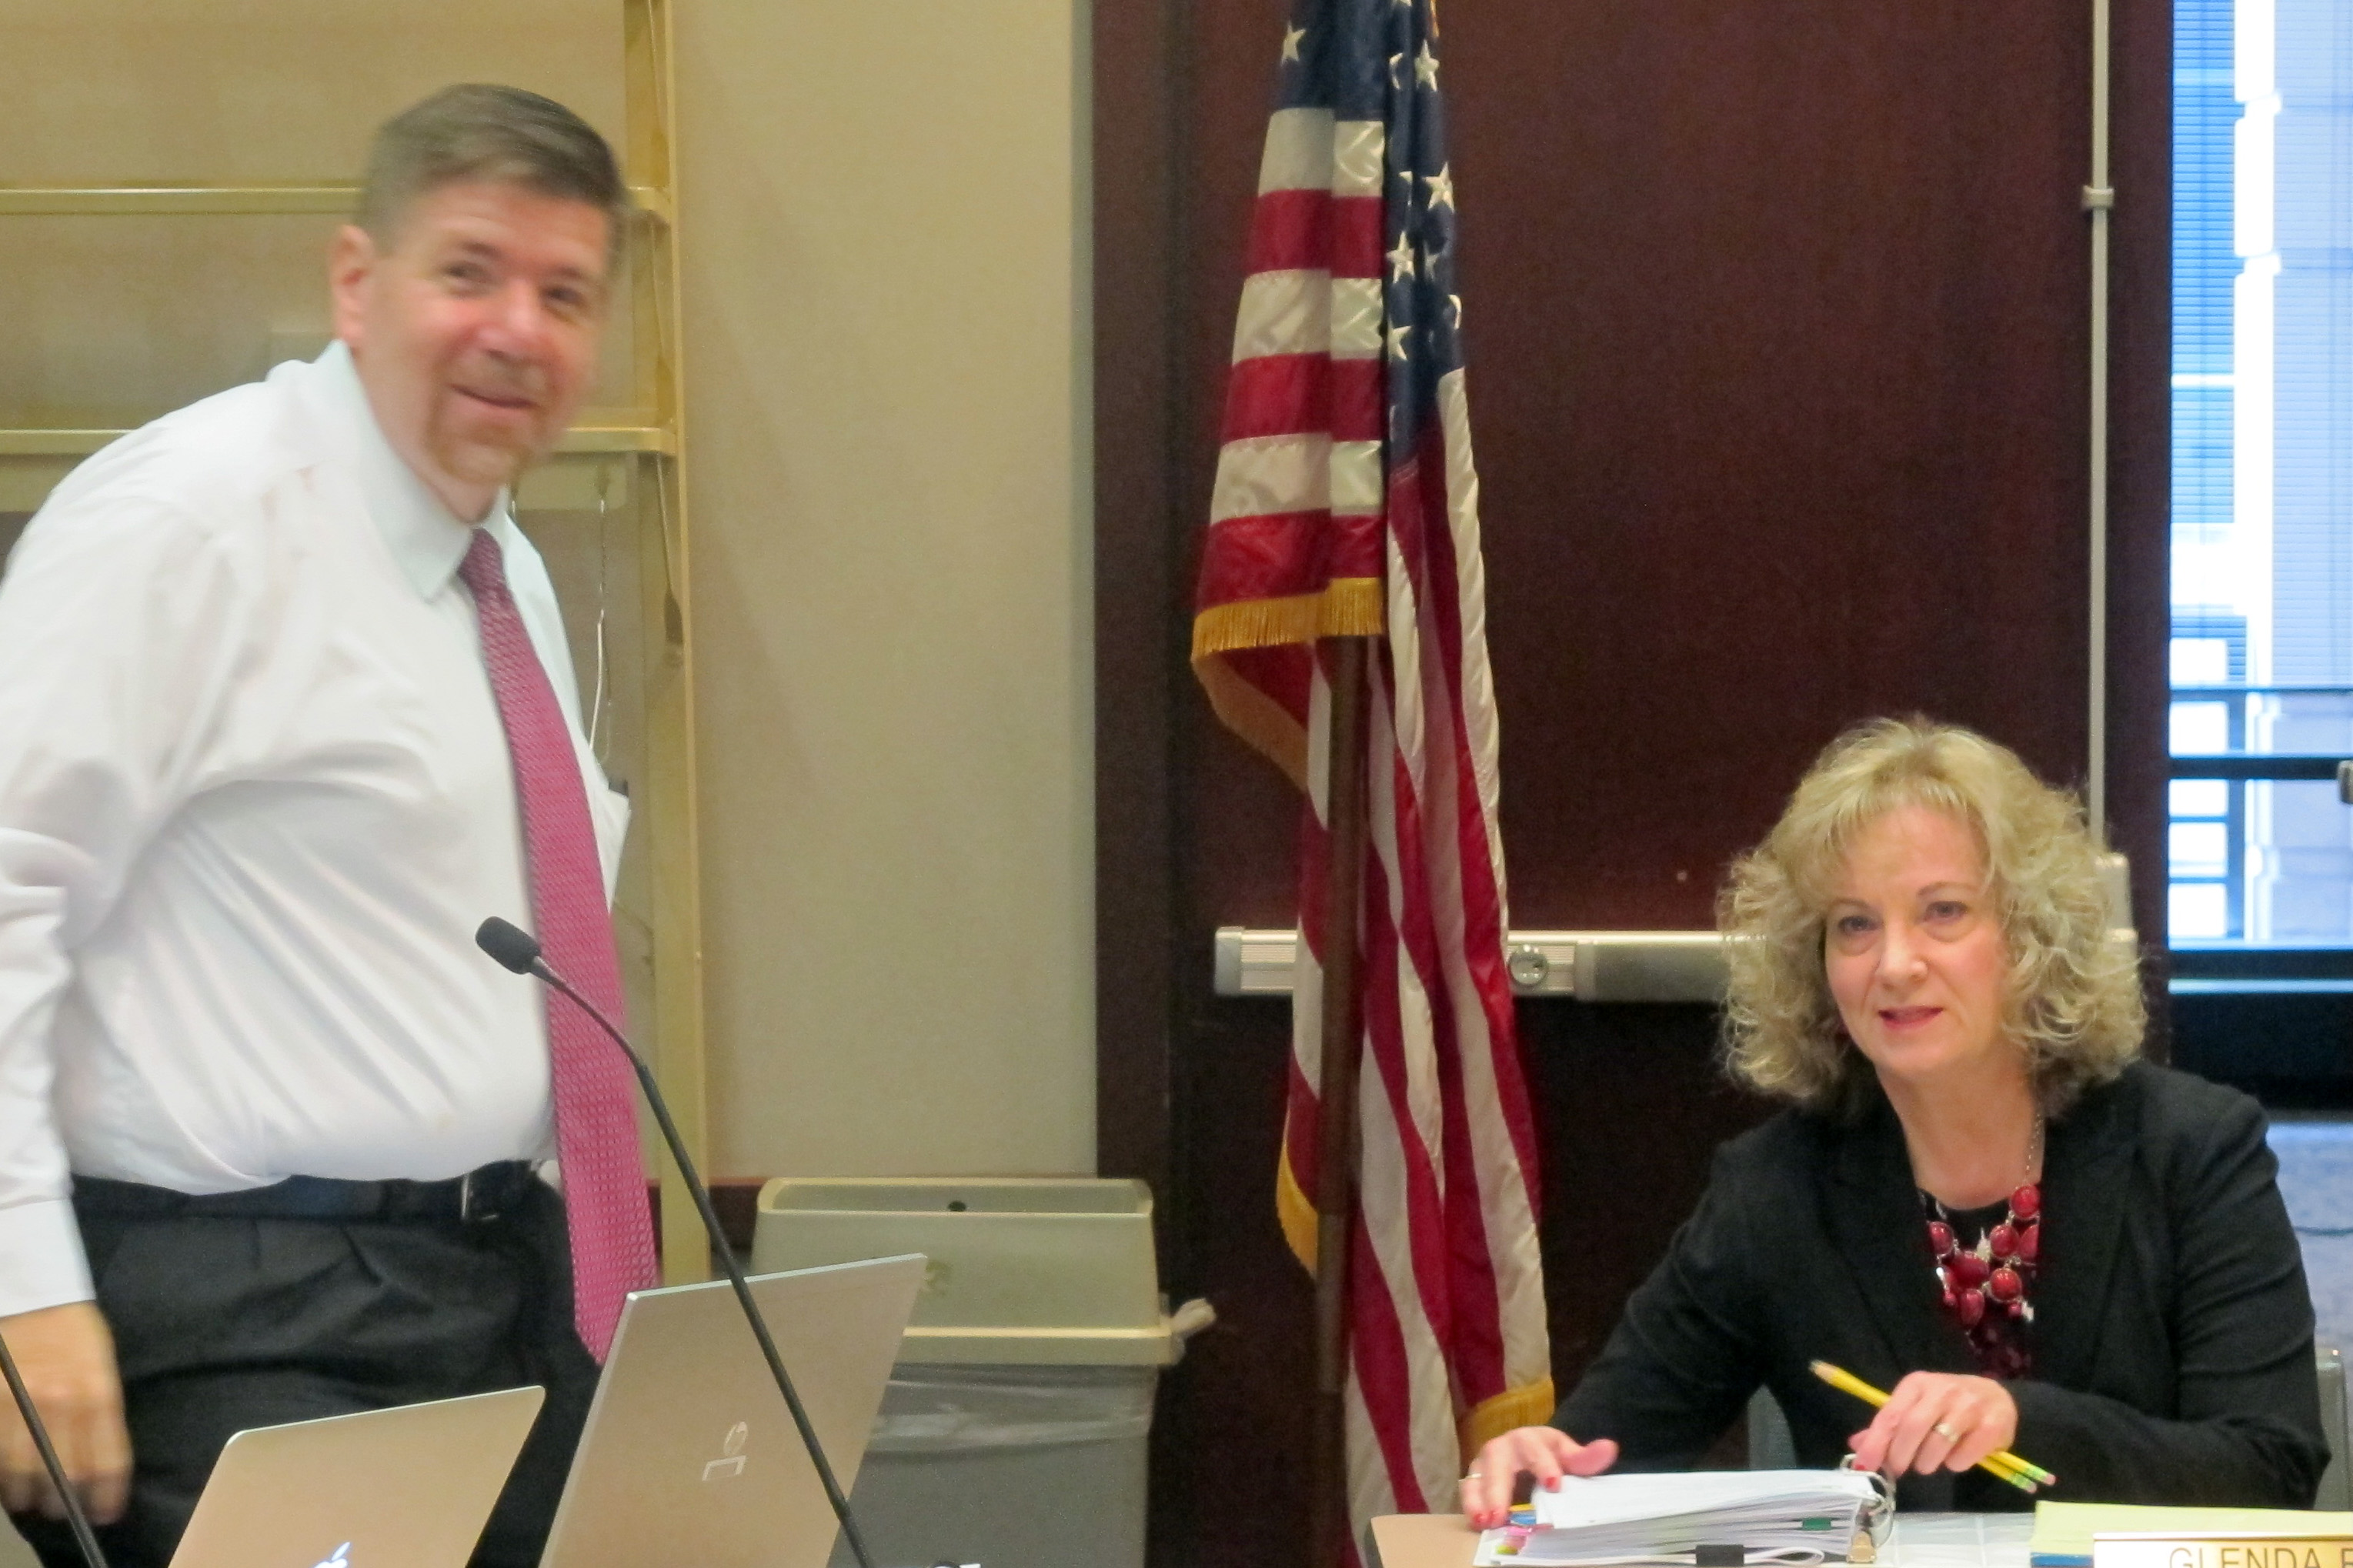 State Superintendent Glenda Ritz, right, and board member Brad Oliver take their seats before the October meeting.